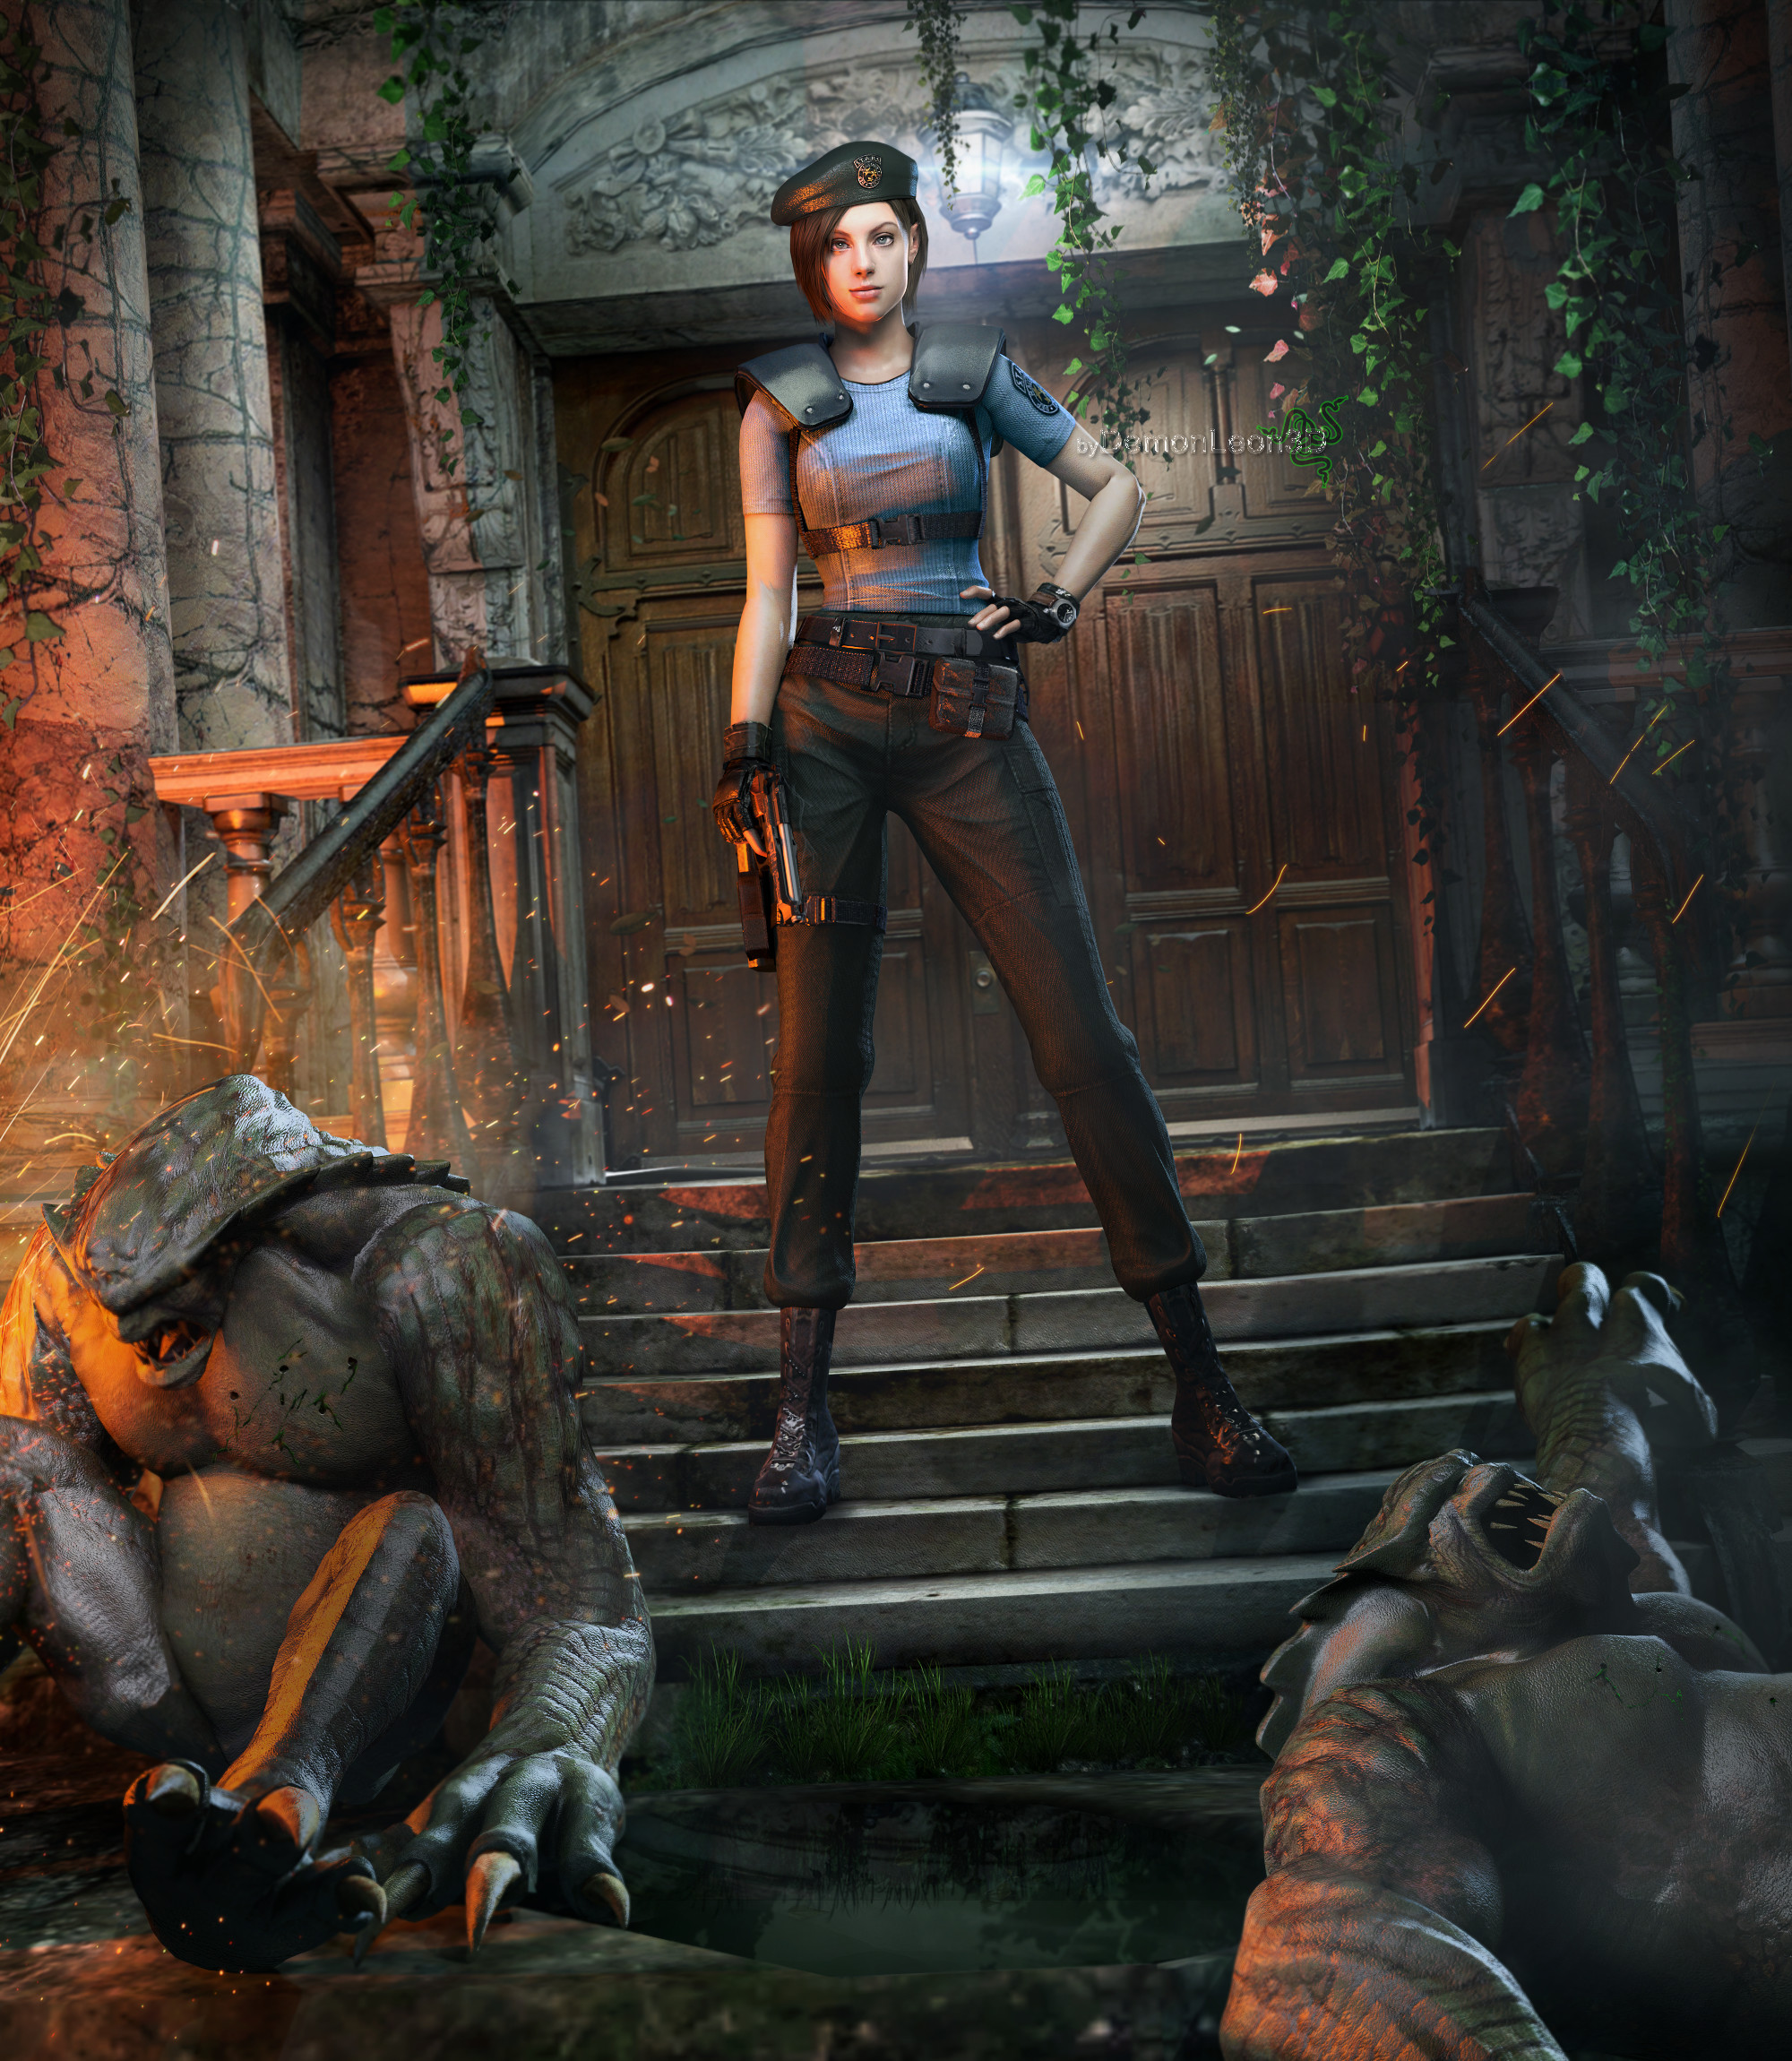 Resident Evil Hd Wallpaper: Resident Evil Jill Valentine Wallpaper (72+ Pictures